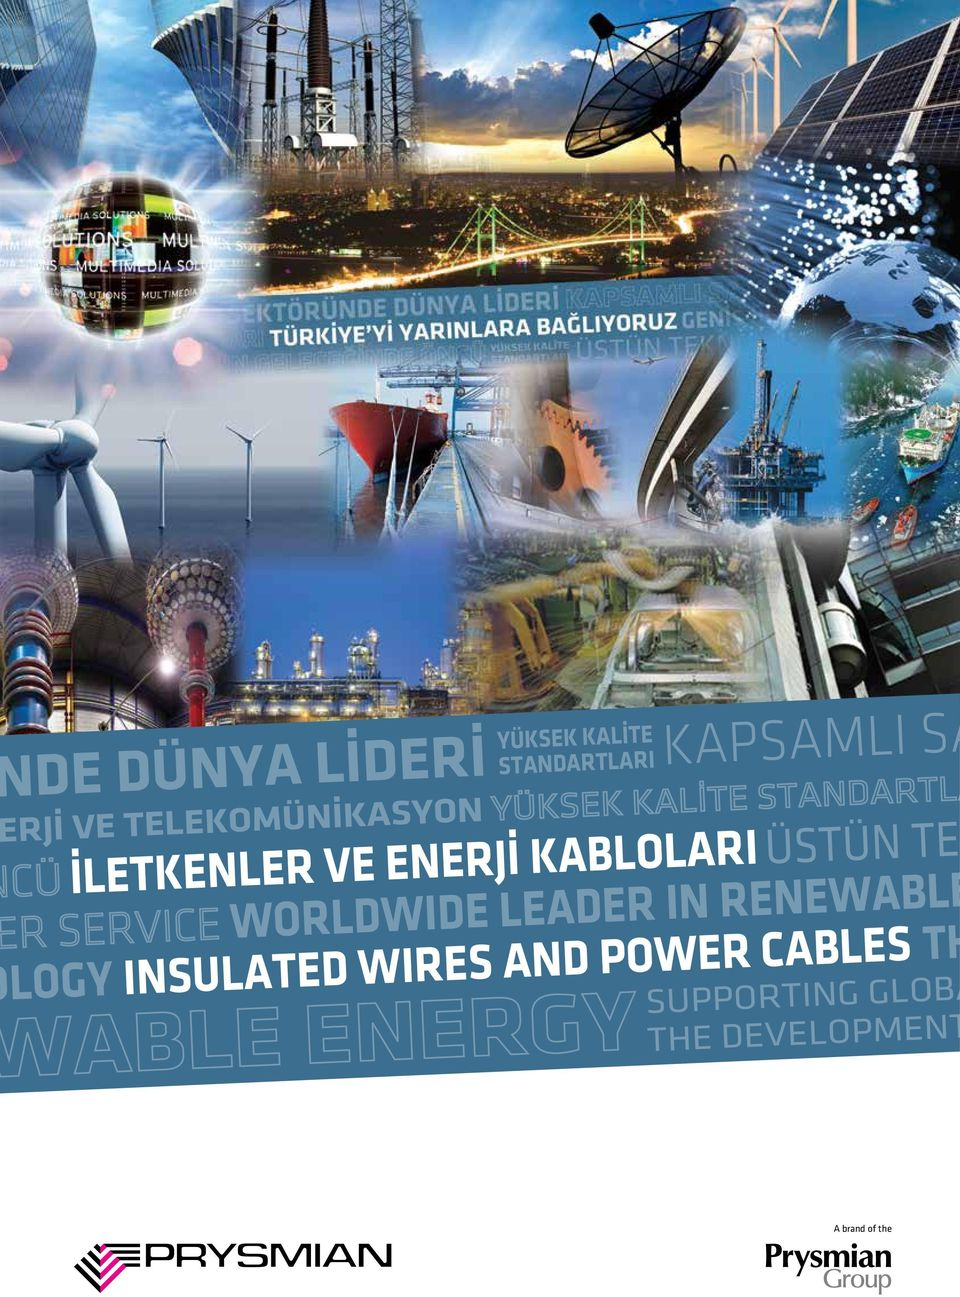 WORLDWIDE LEADER IN RENEWABLE LOGY INSULATED WIRES AND